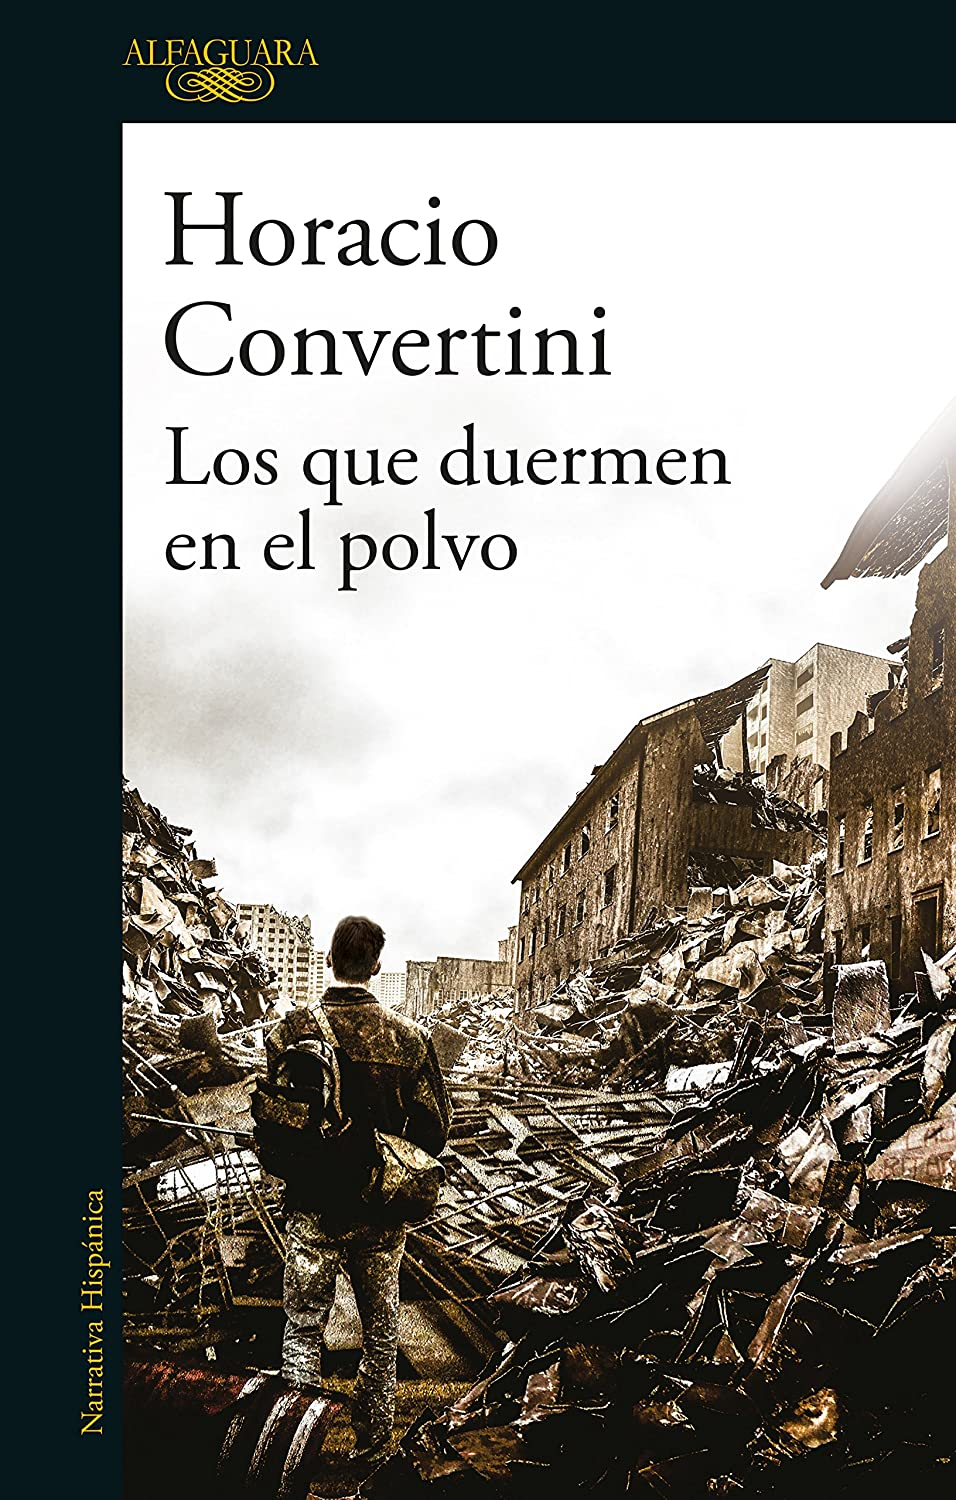 Los que duermen en el polvo eBook: Convertini, Horacio: Amazon.es ...